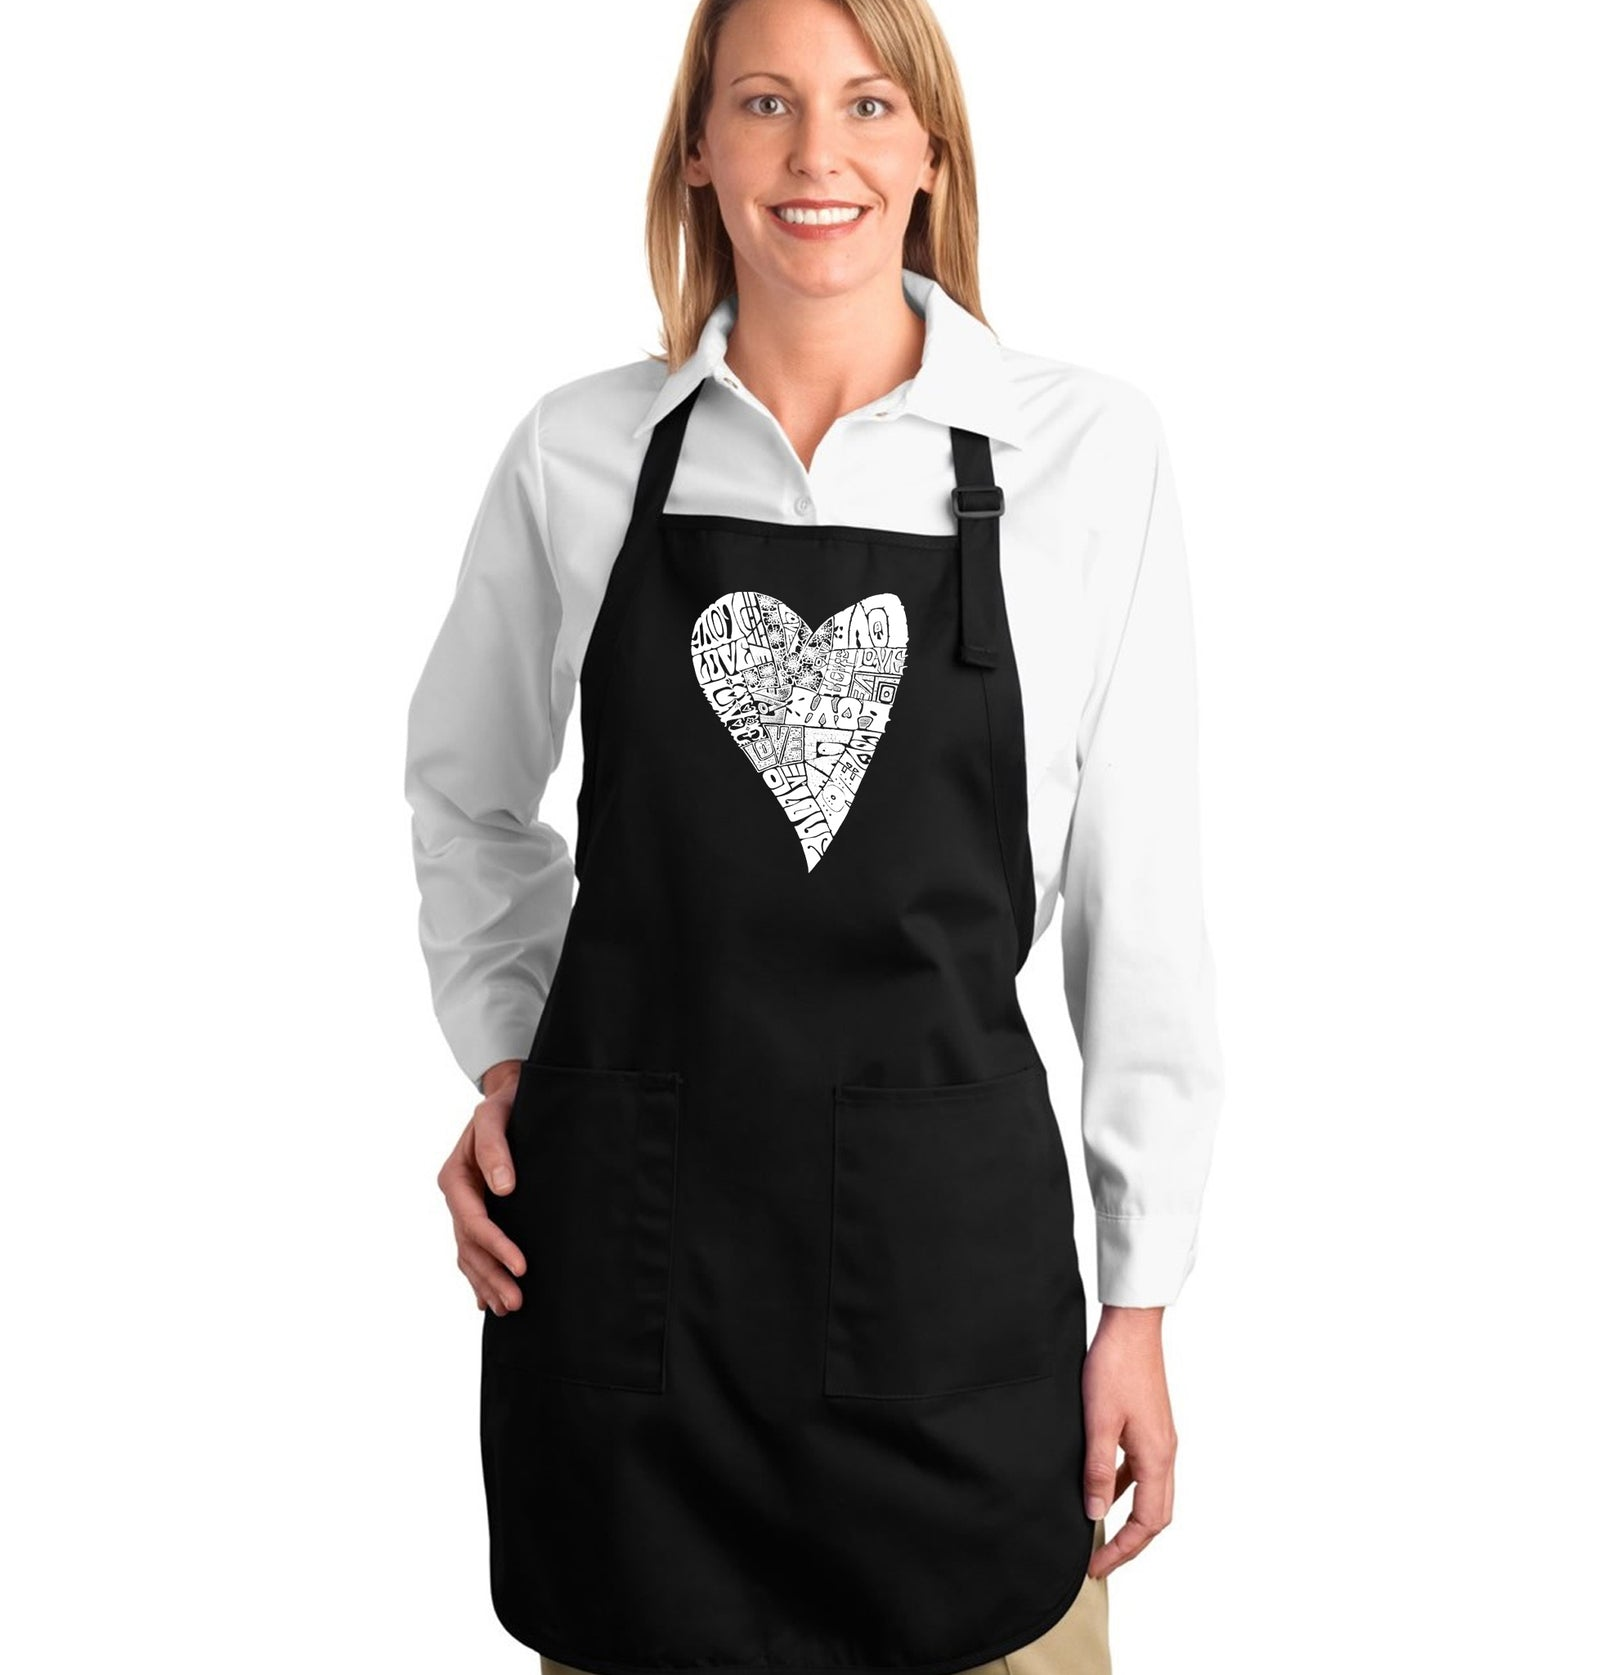 Full Length Apron - Lots of Love